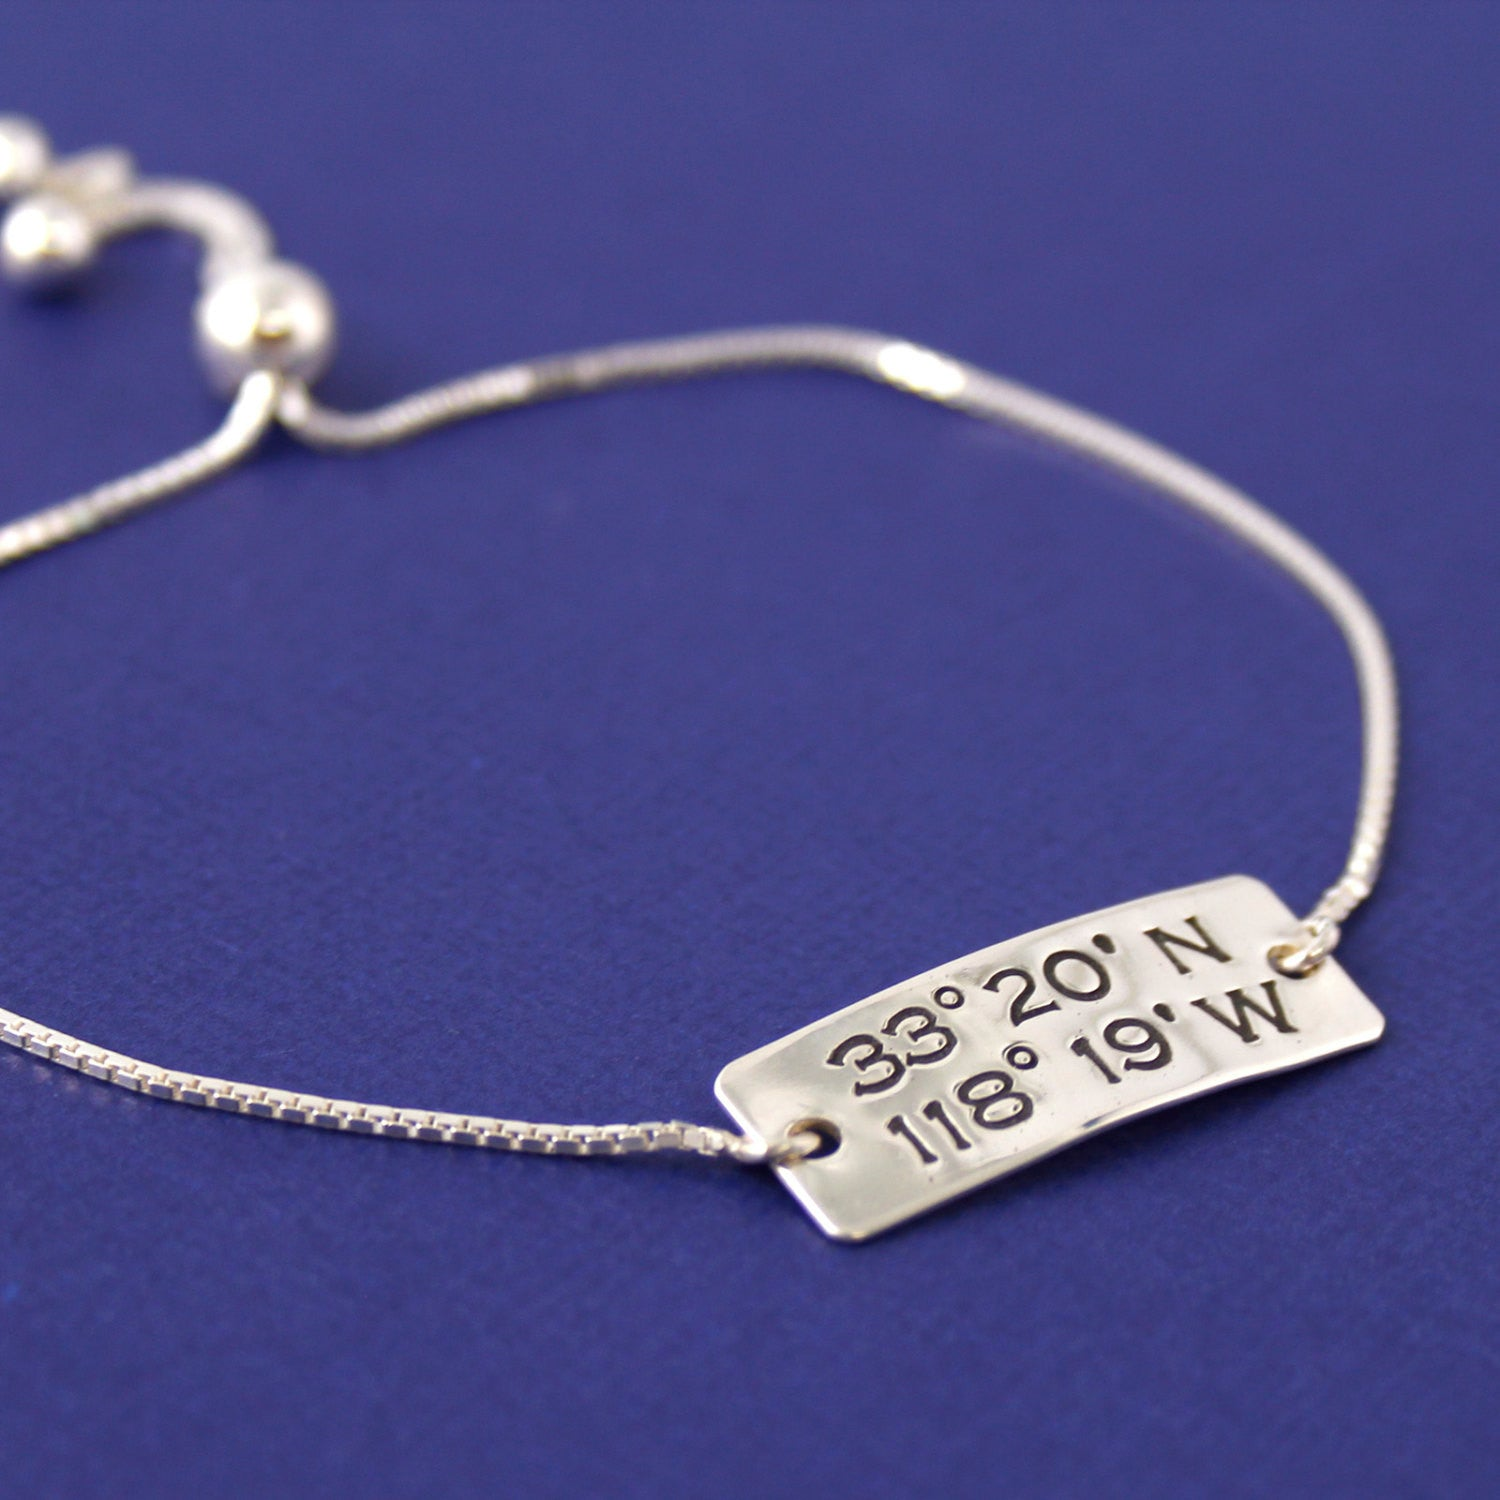 long bracelet coordinates pin lo engraved lat jewelry wichita ks